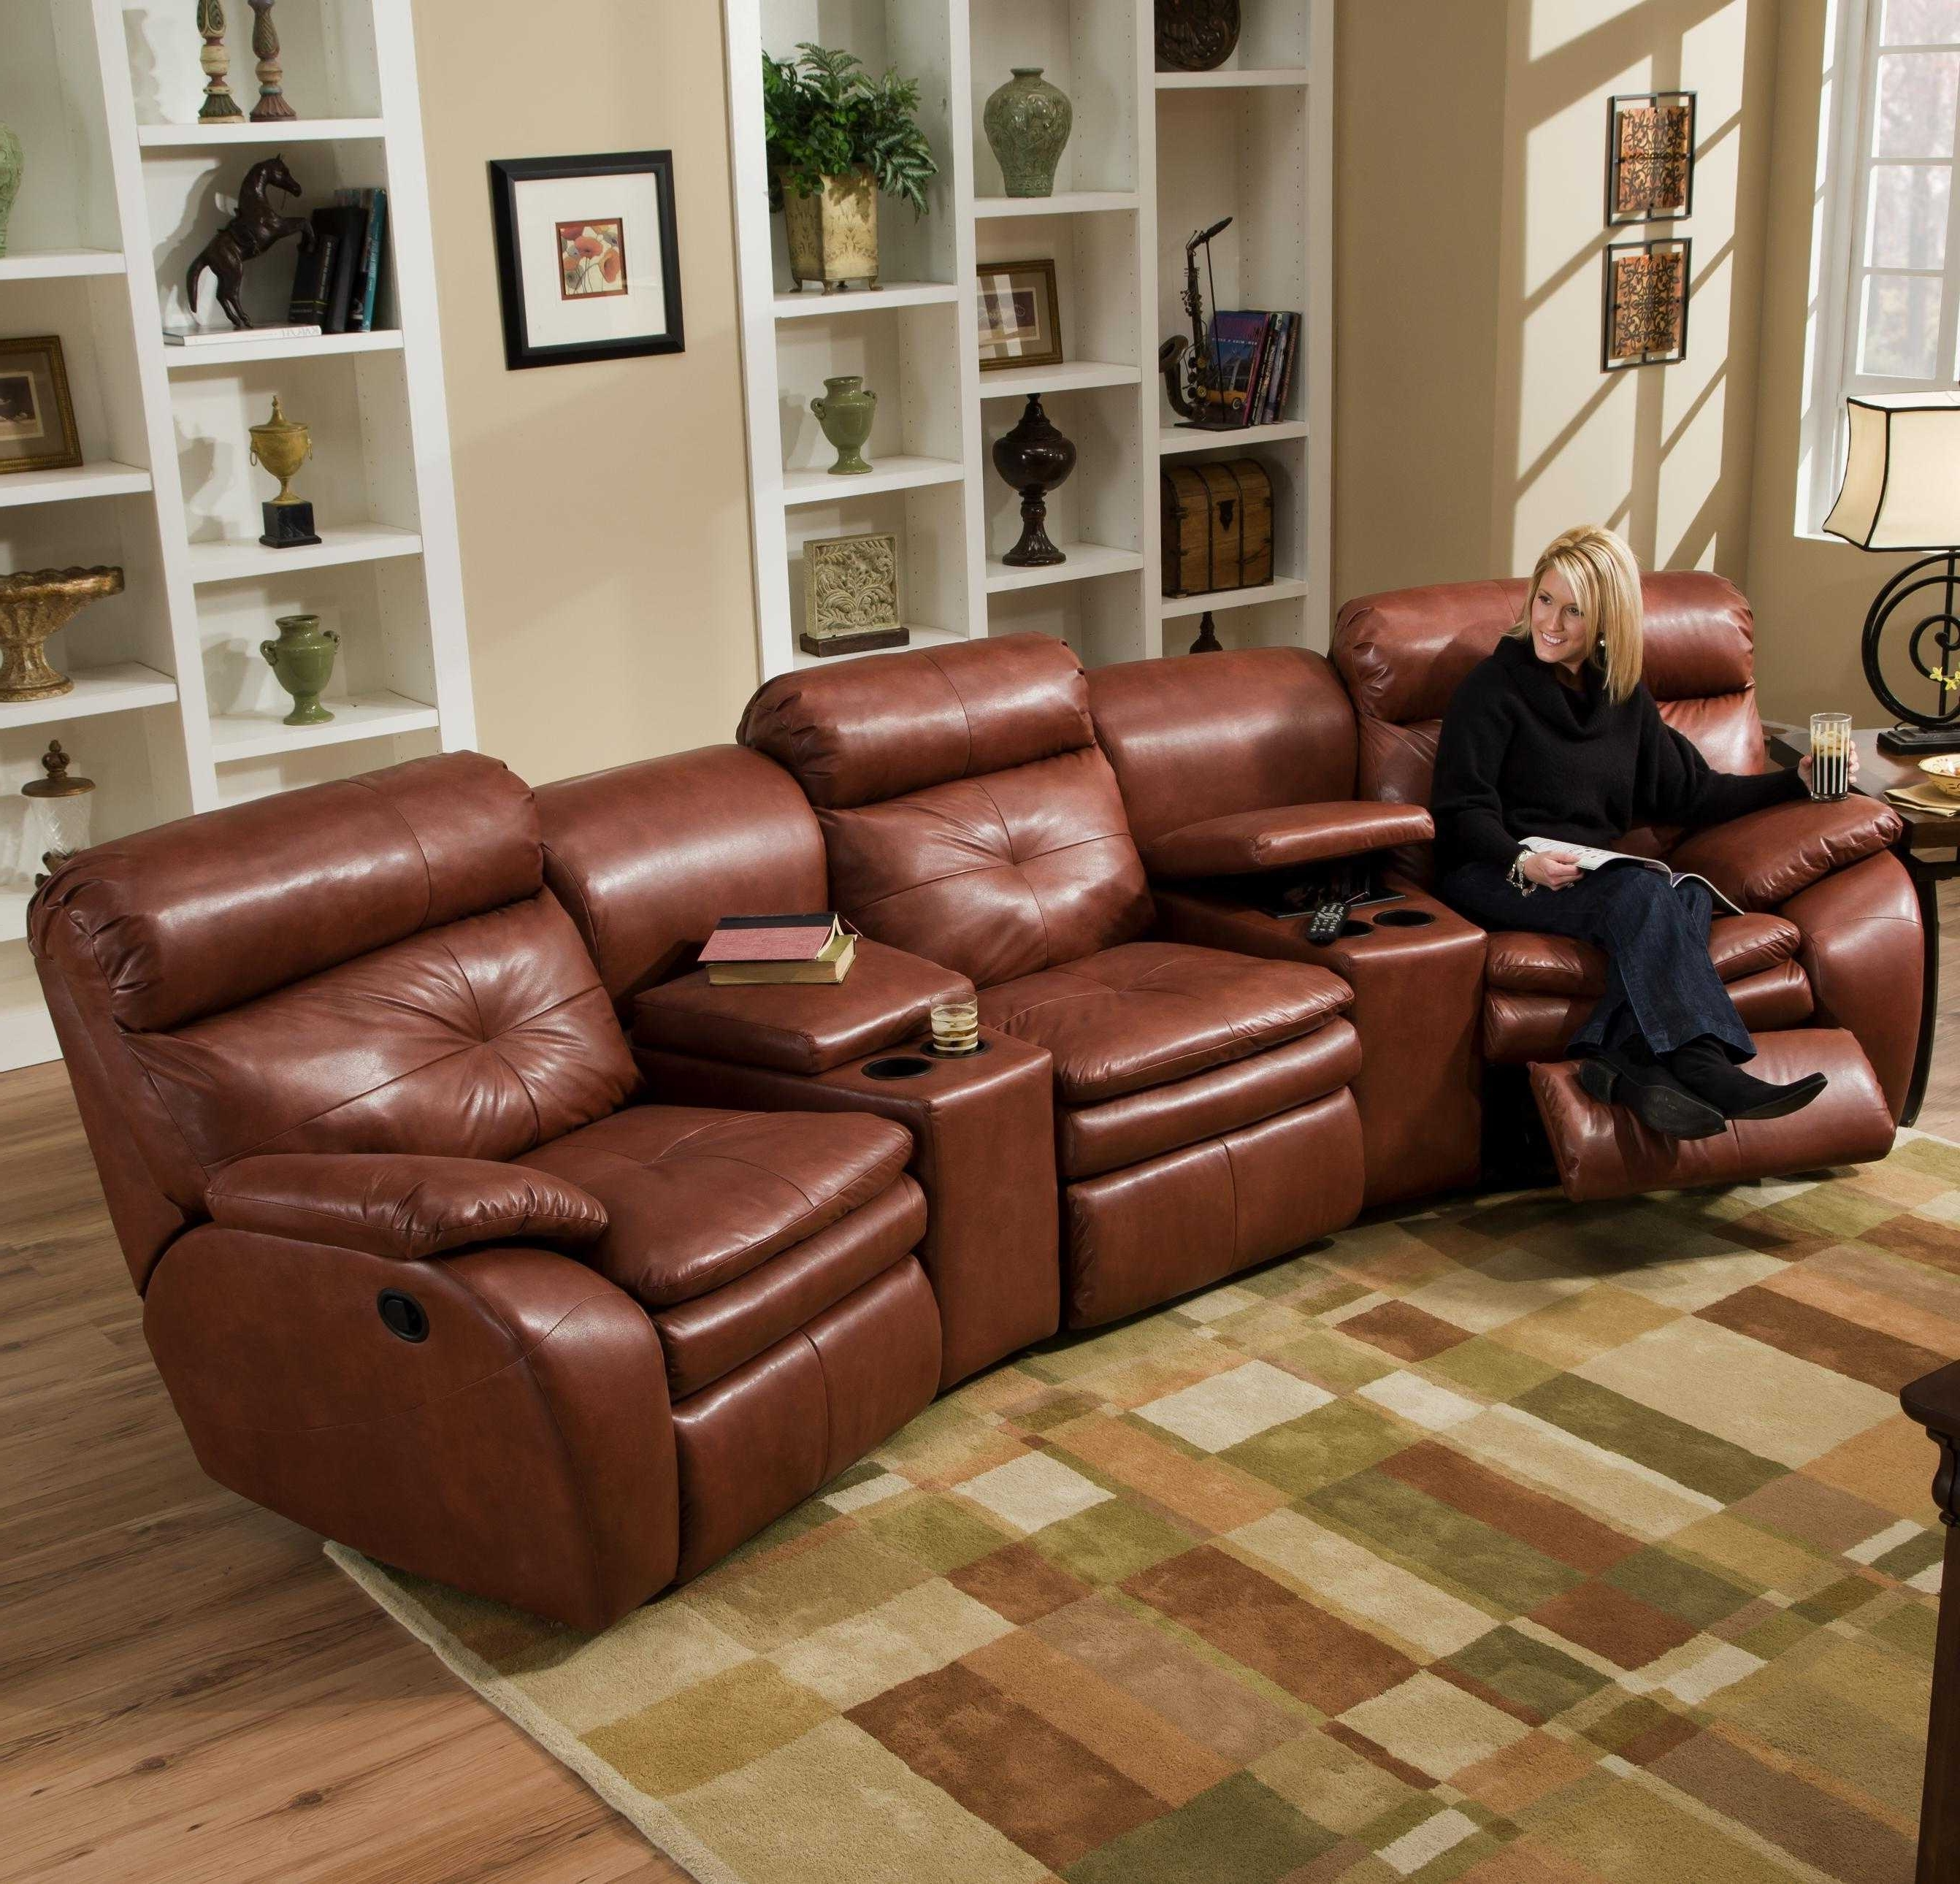 Sectional Sofas With Cup Holders Within 2018 Sectional Sofas With Recliners And Cup Holders Sofa Furniture (View 13 of 15)